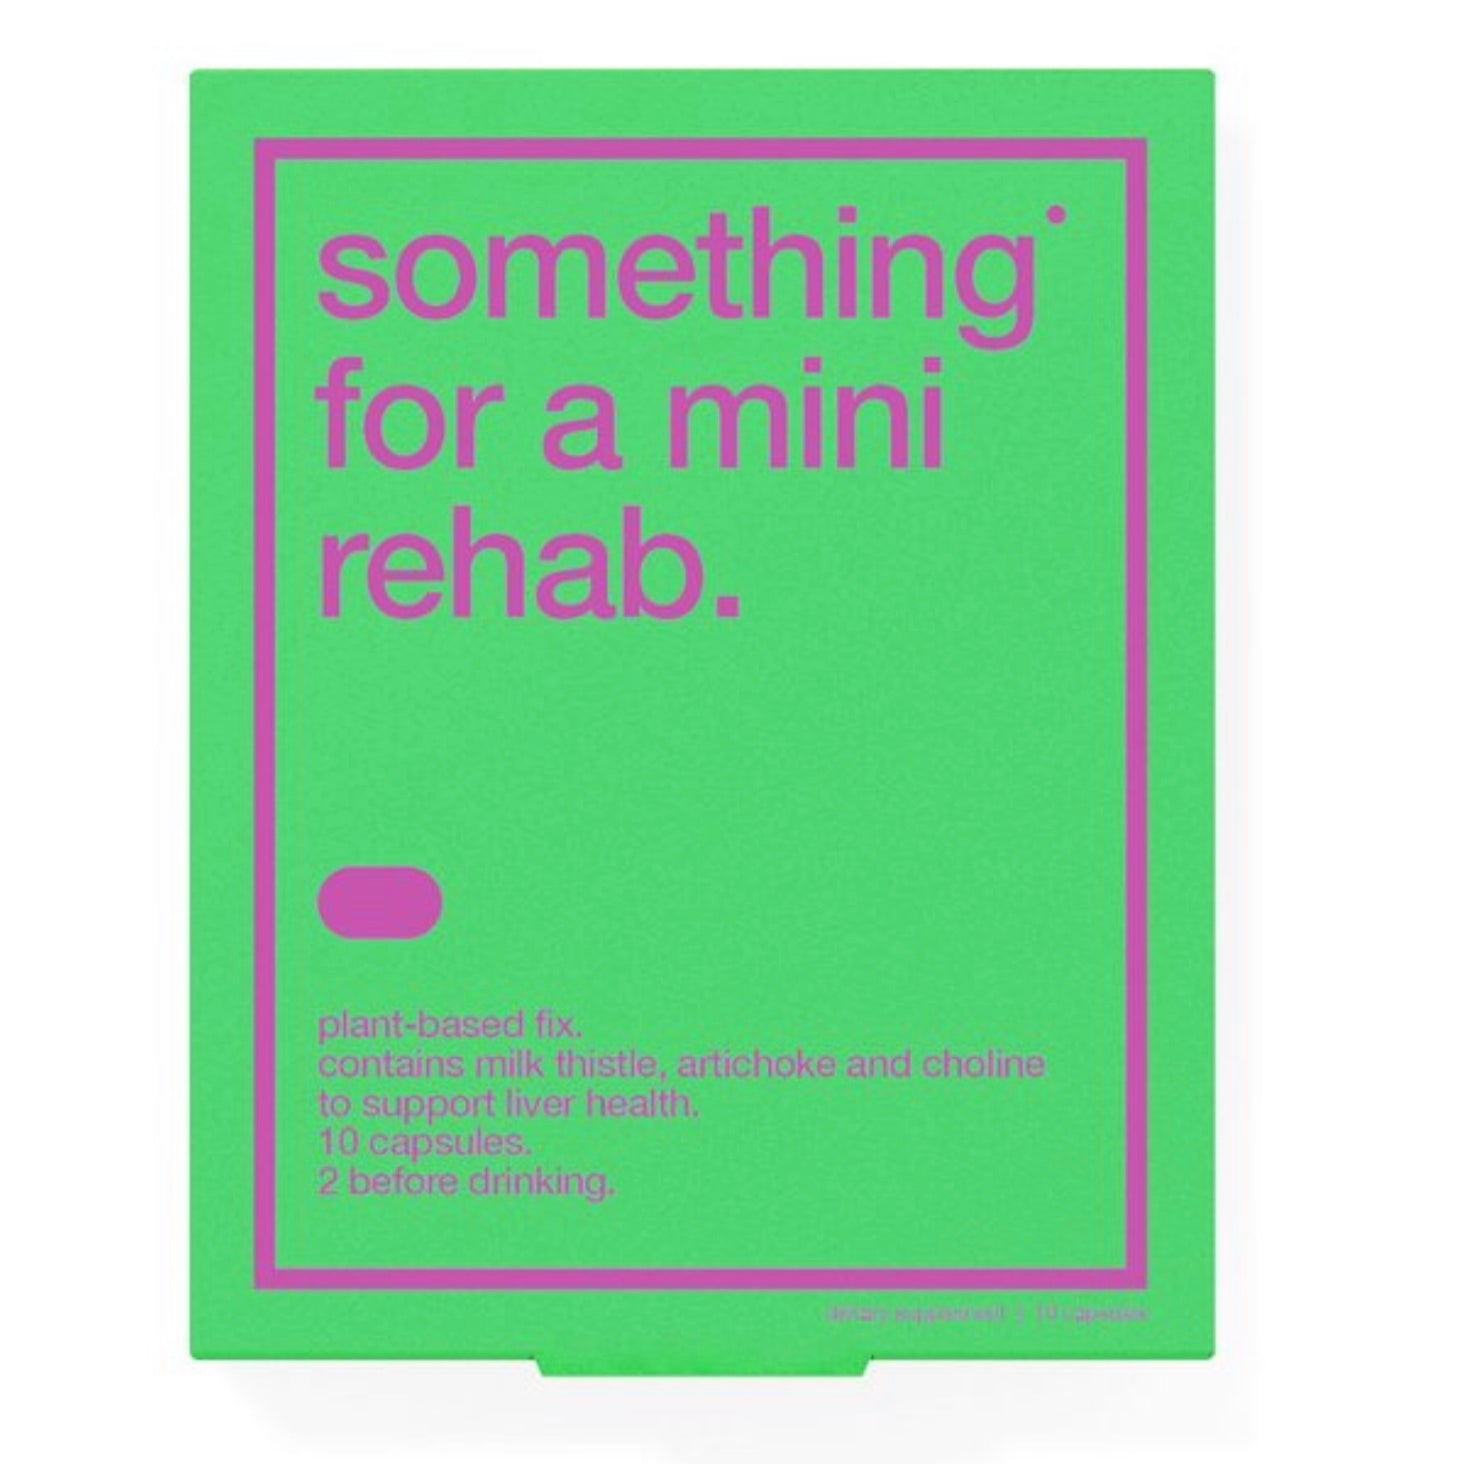 BIOCOL // SOMETHING FOR A MINI REHAB